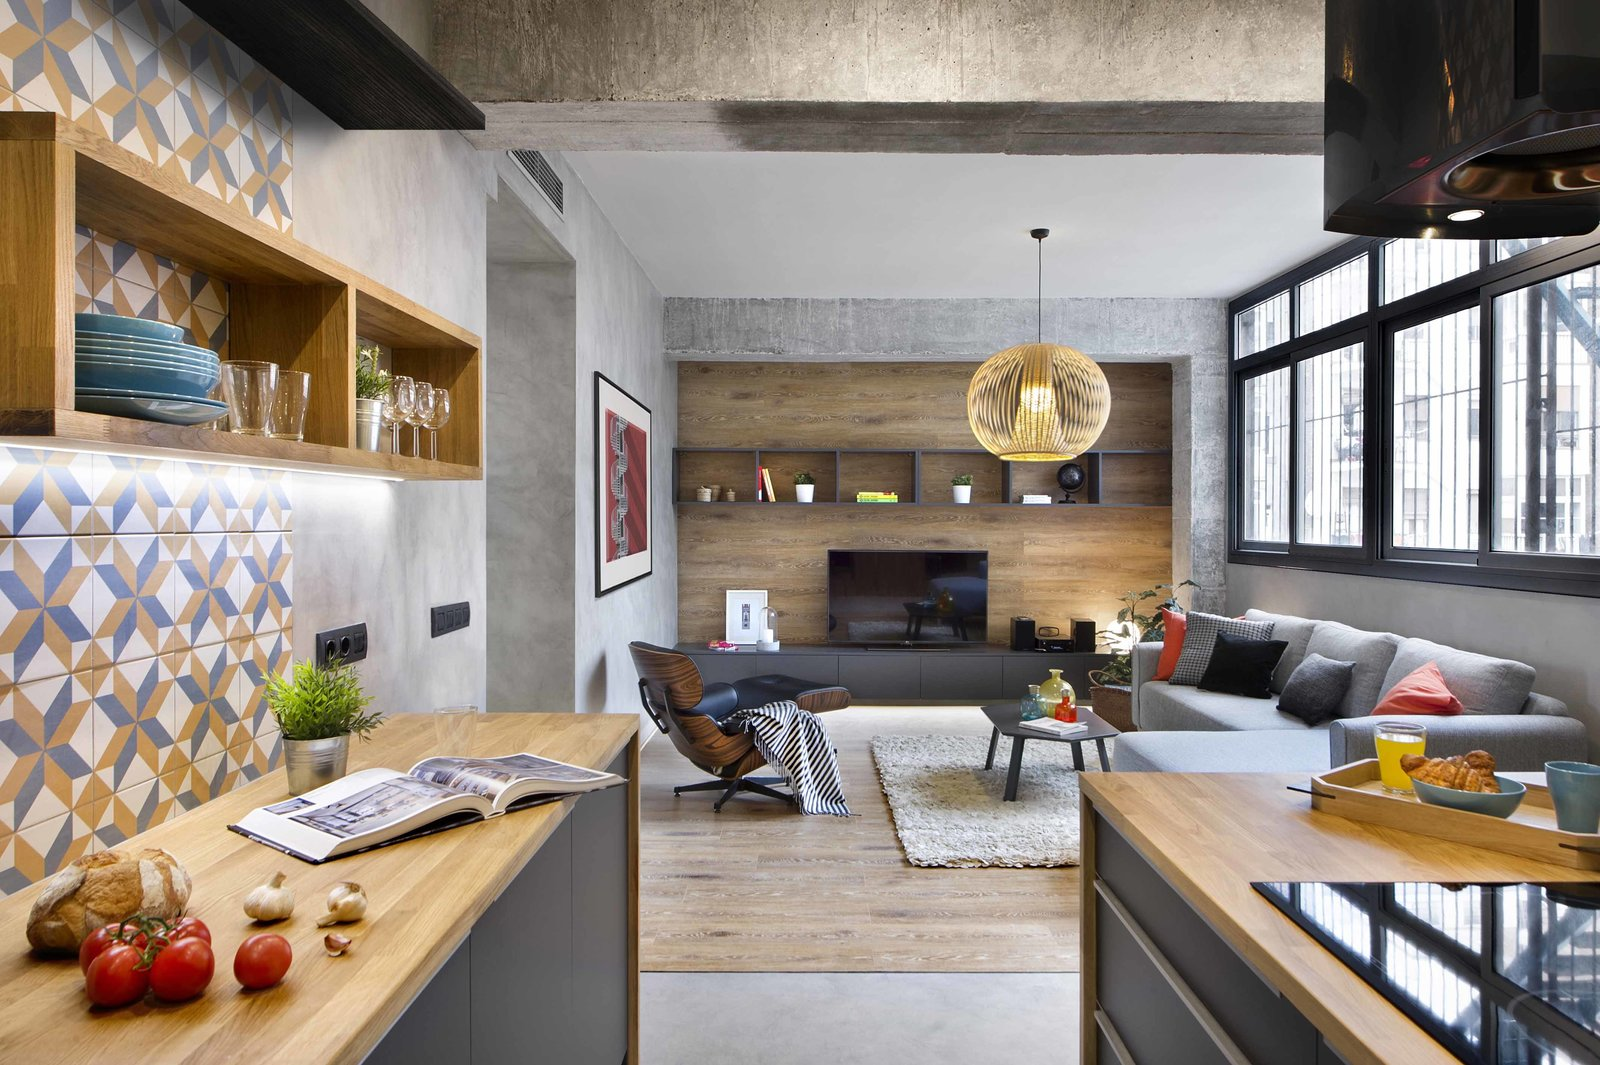 Living, Sofa, Coffee Tables, Media Cabinet, Storage, Shelves, Pendant, Table, Laminate, and Rug  Living Storage Laminate Photos from In This Compact Barcelona Apartment, Space Is Maximized With Smart Material Choices